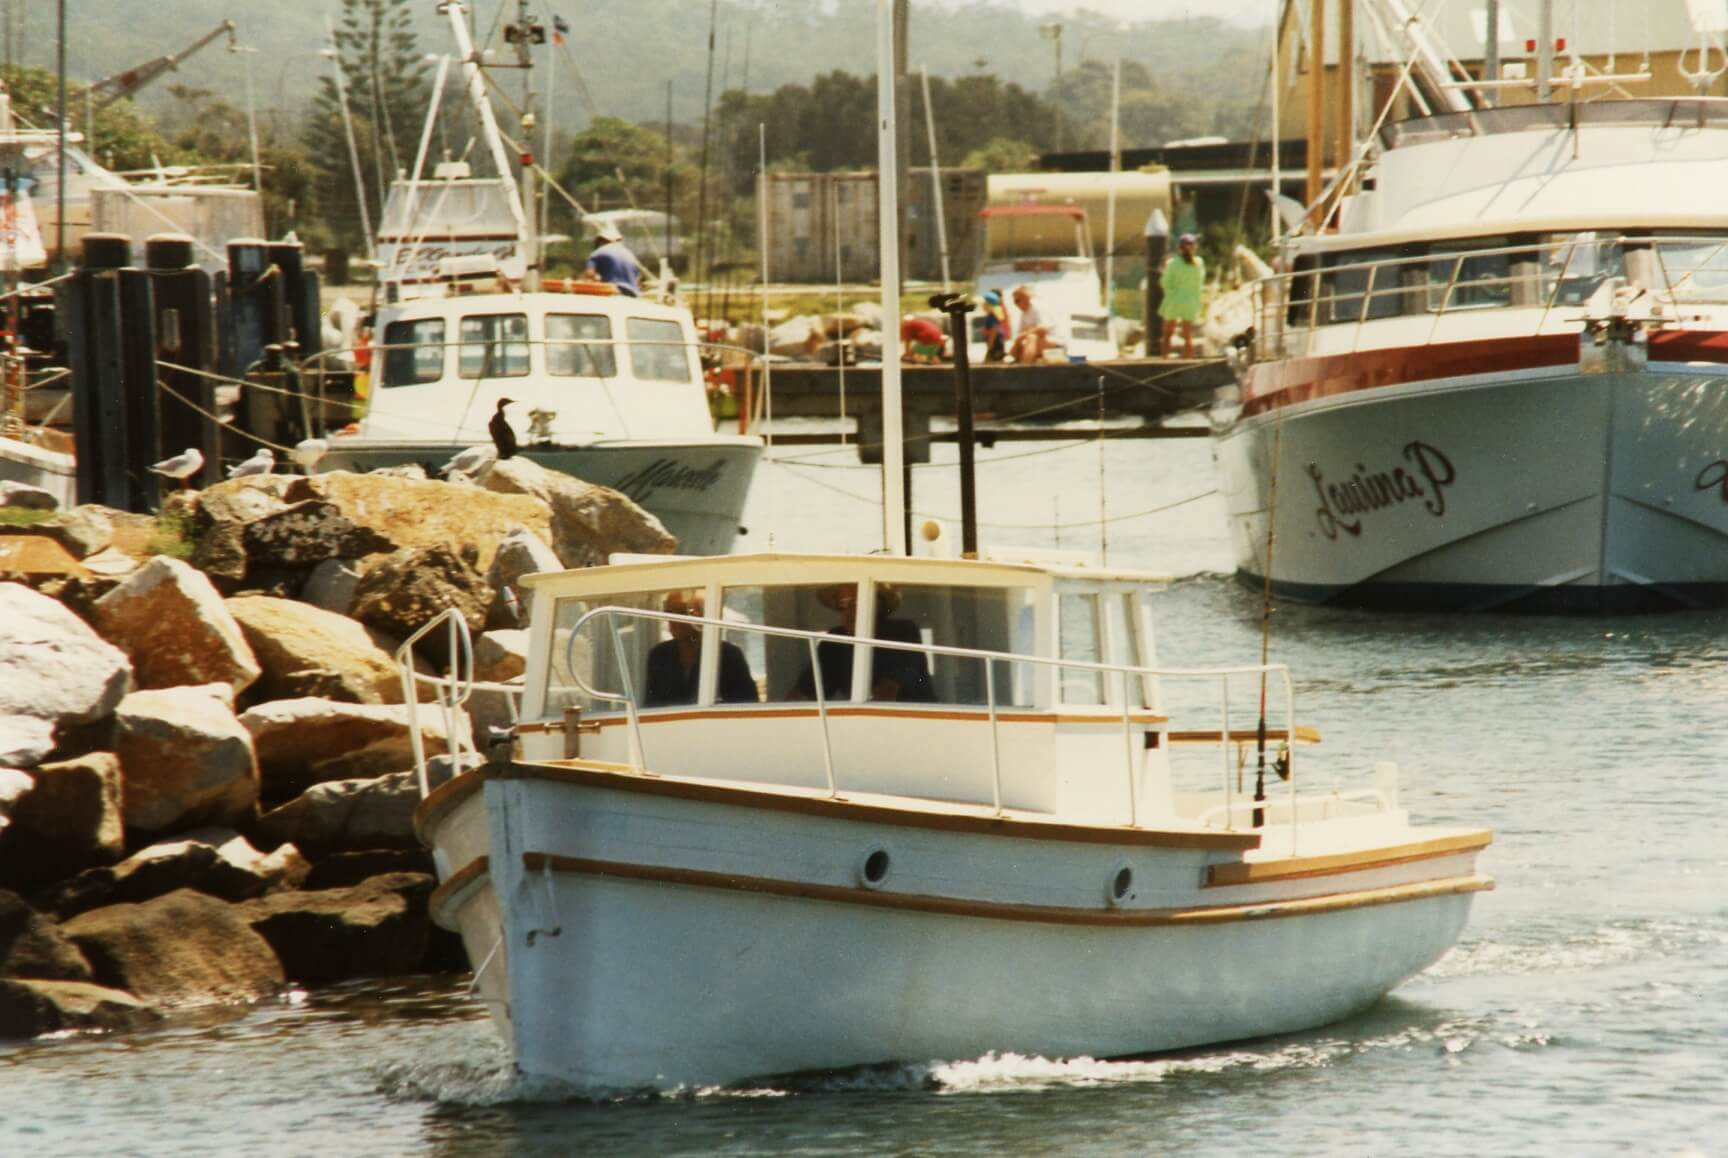 Boat Lady Jane Bermagui - Harbour Fishing Boats